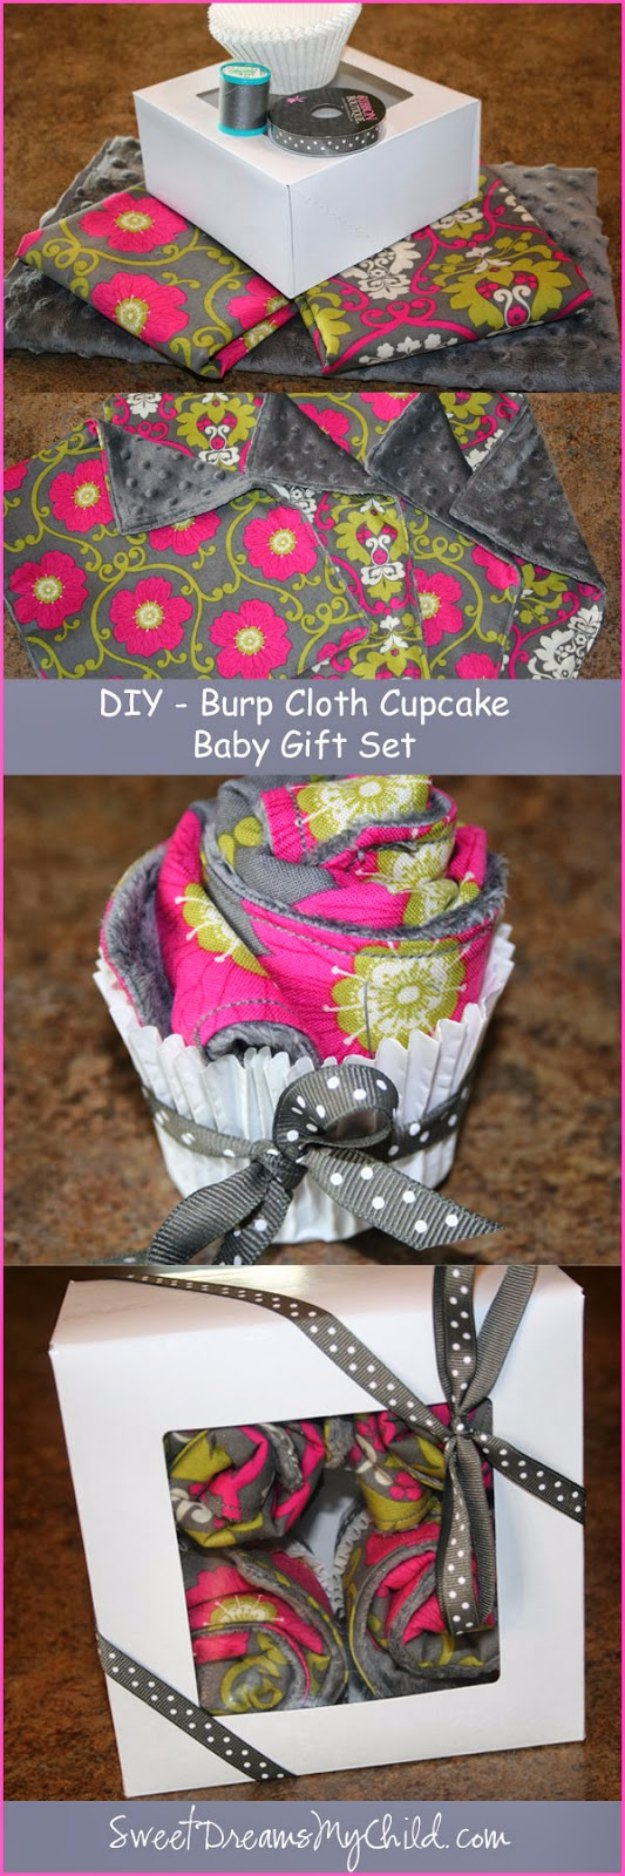 fabulous diy baby shower gifts  page  of   diy joy, Baby shower